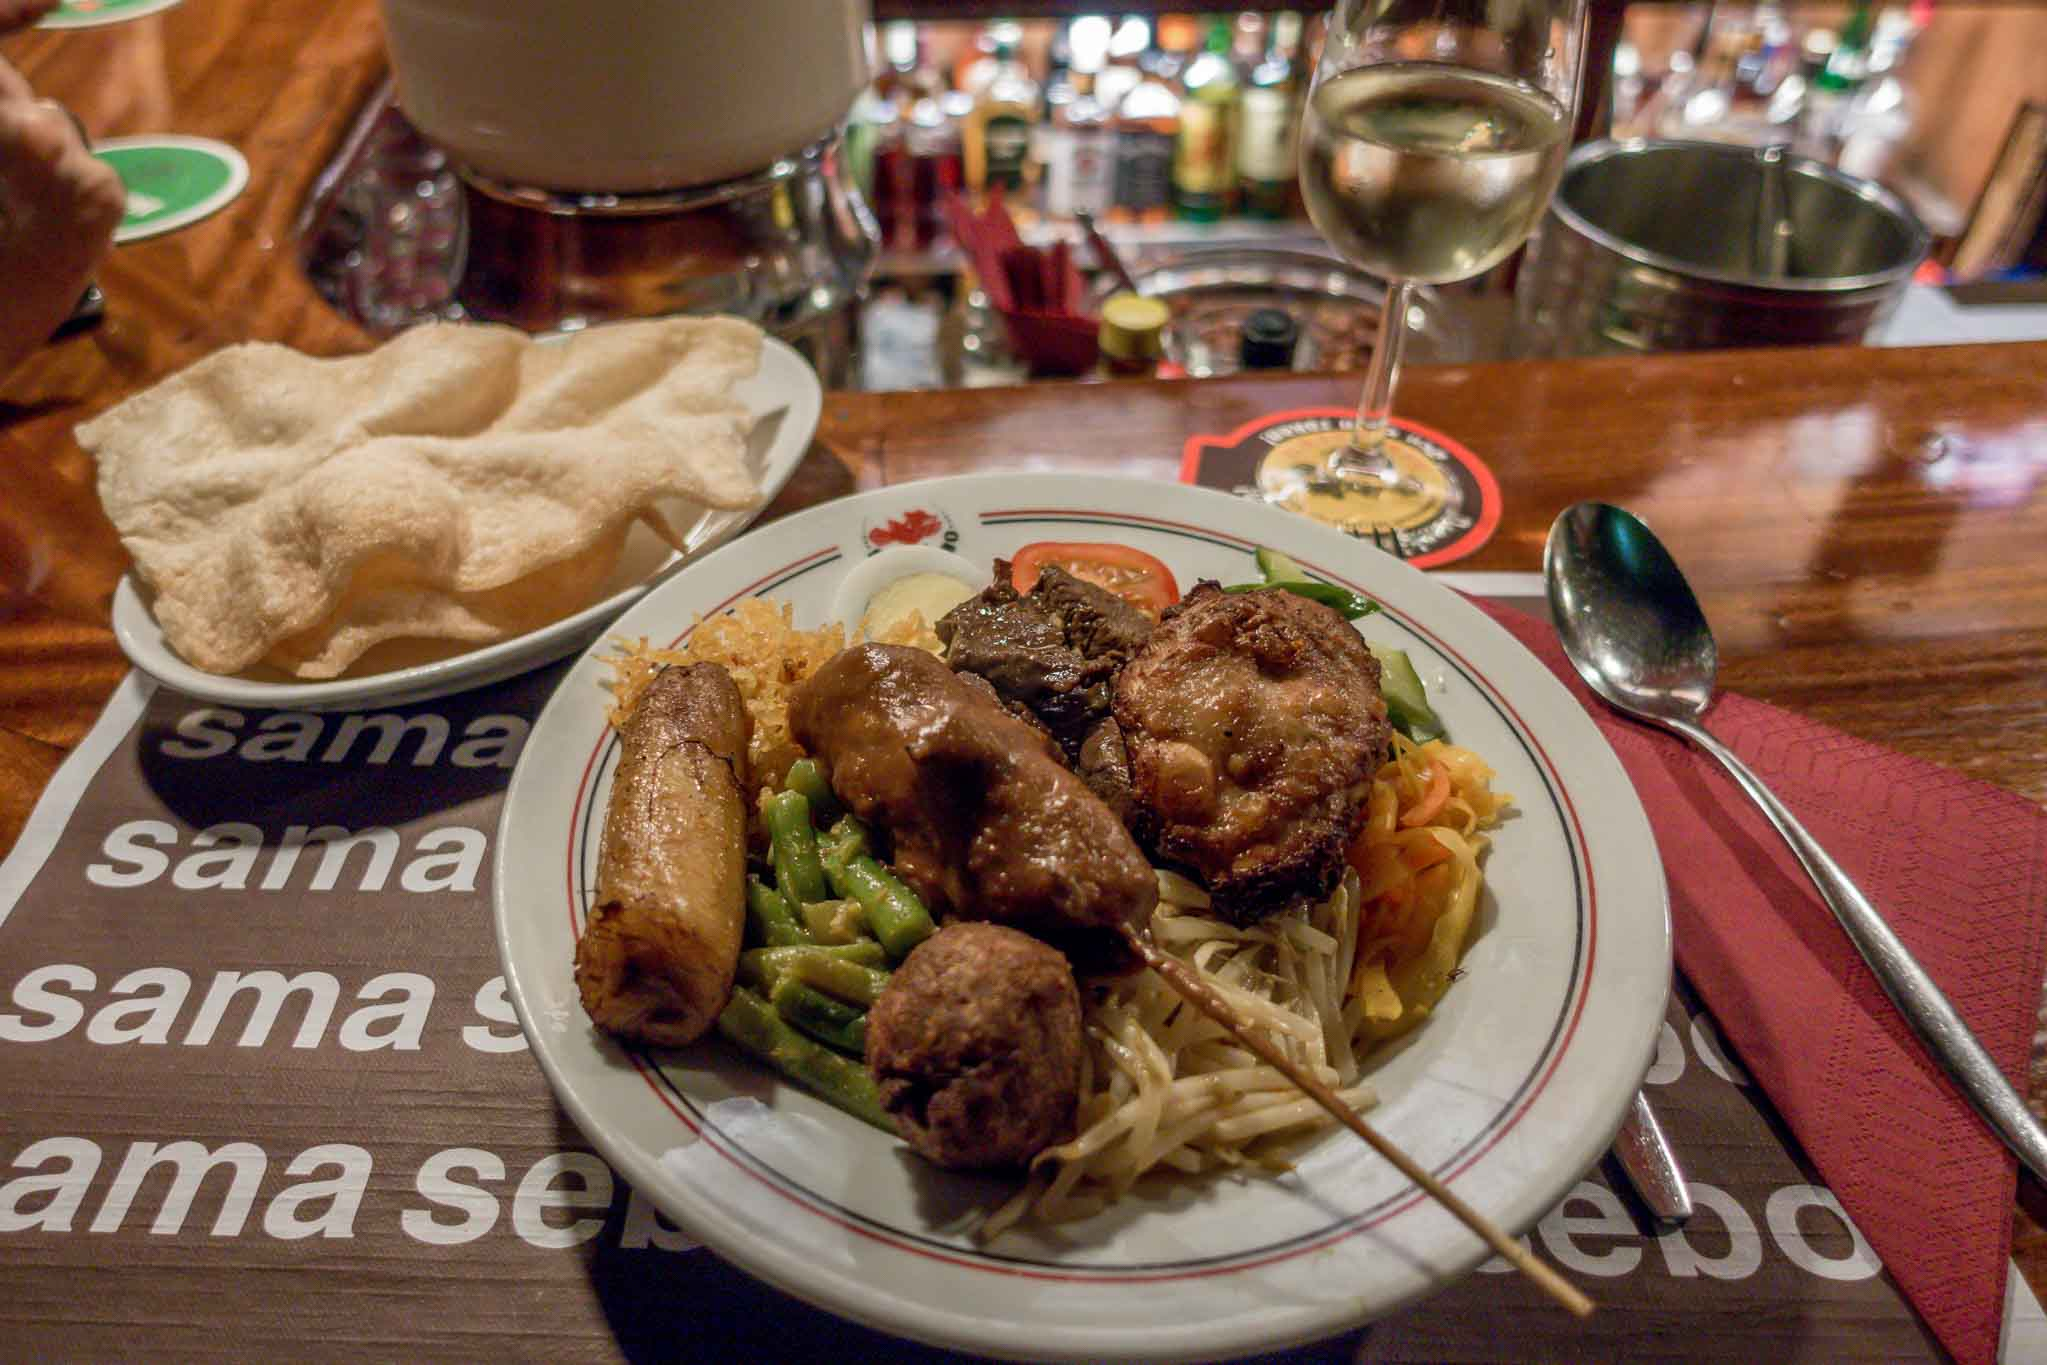 Indonesian food is a must-try when you visit Amsterdam